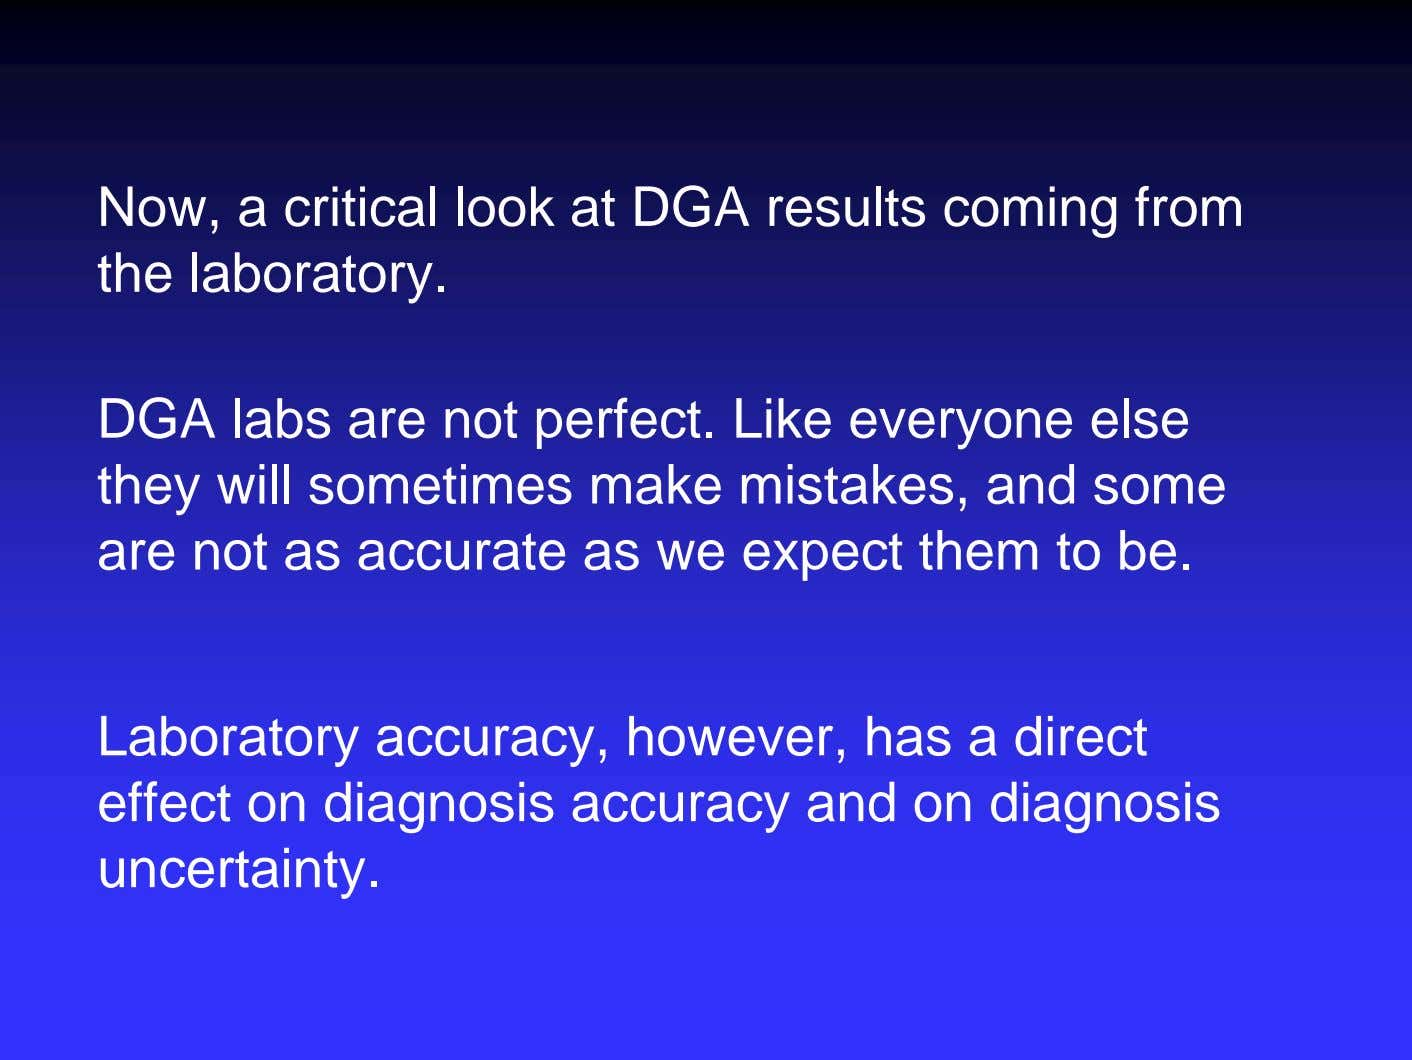 Now, a critical look at DGA results coming from the laboratory. DGA labs are not